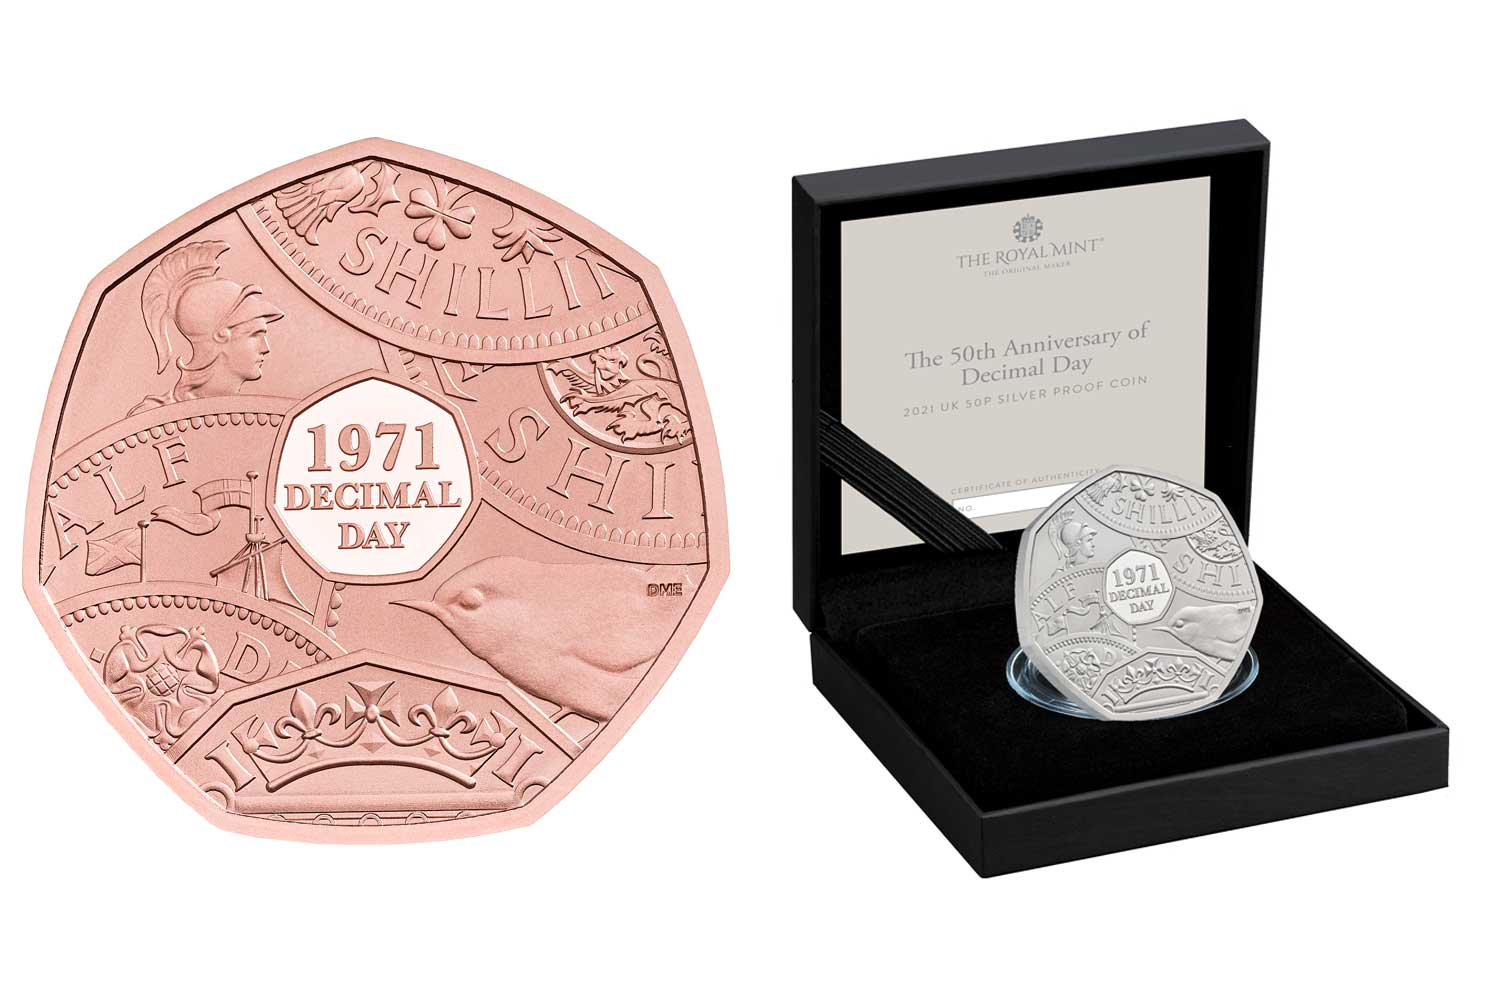 The Royal Mint has launched a commemorative set of 50p coins to mark the anniversary of Decimal Day